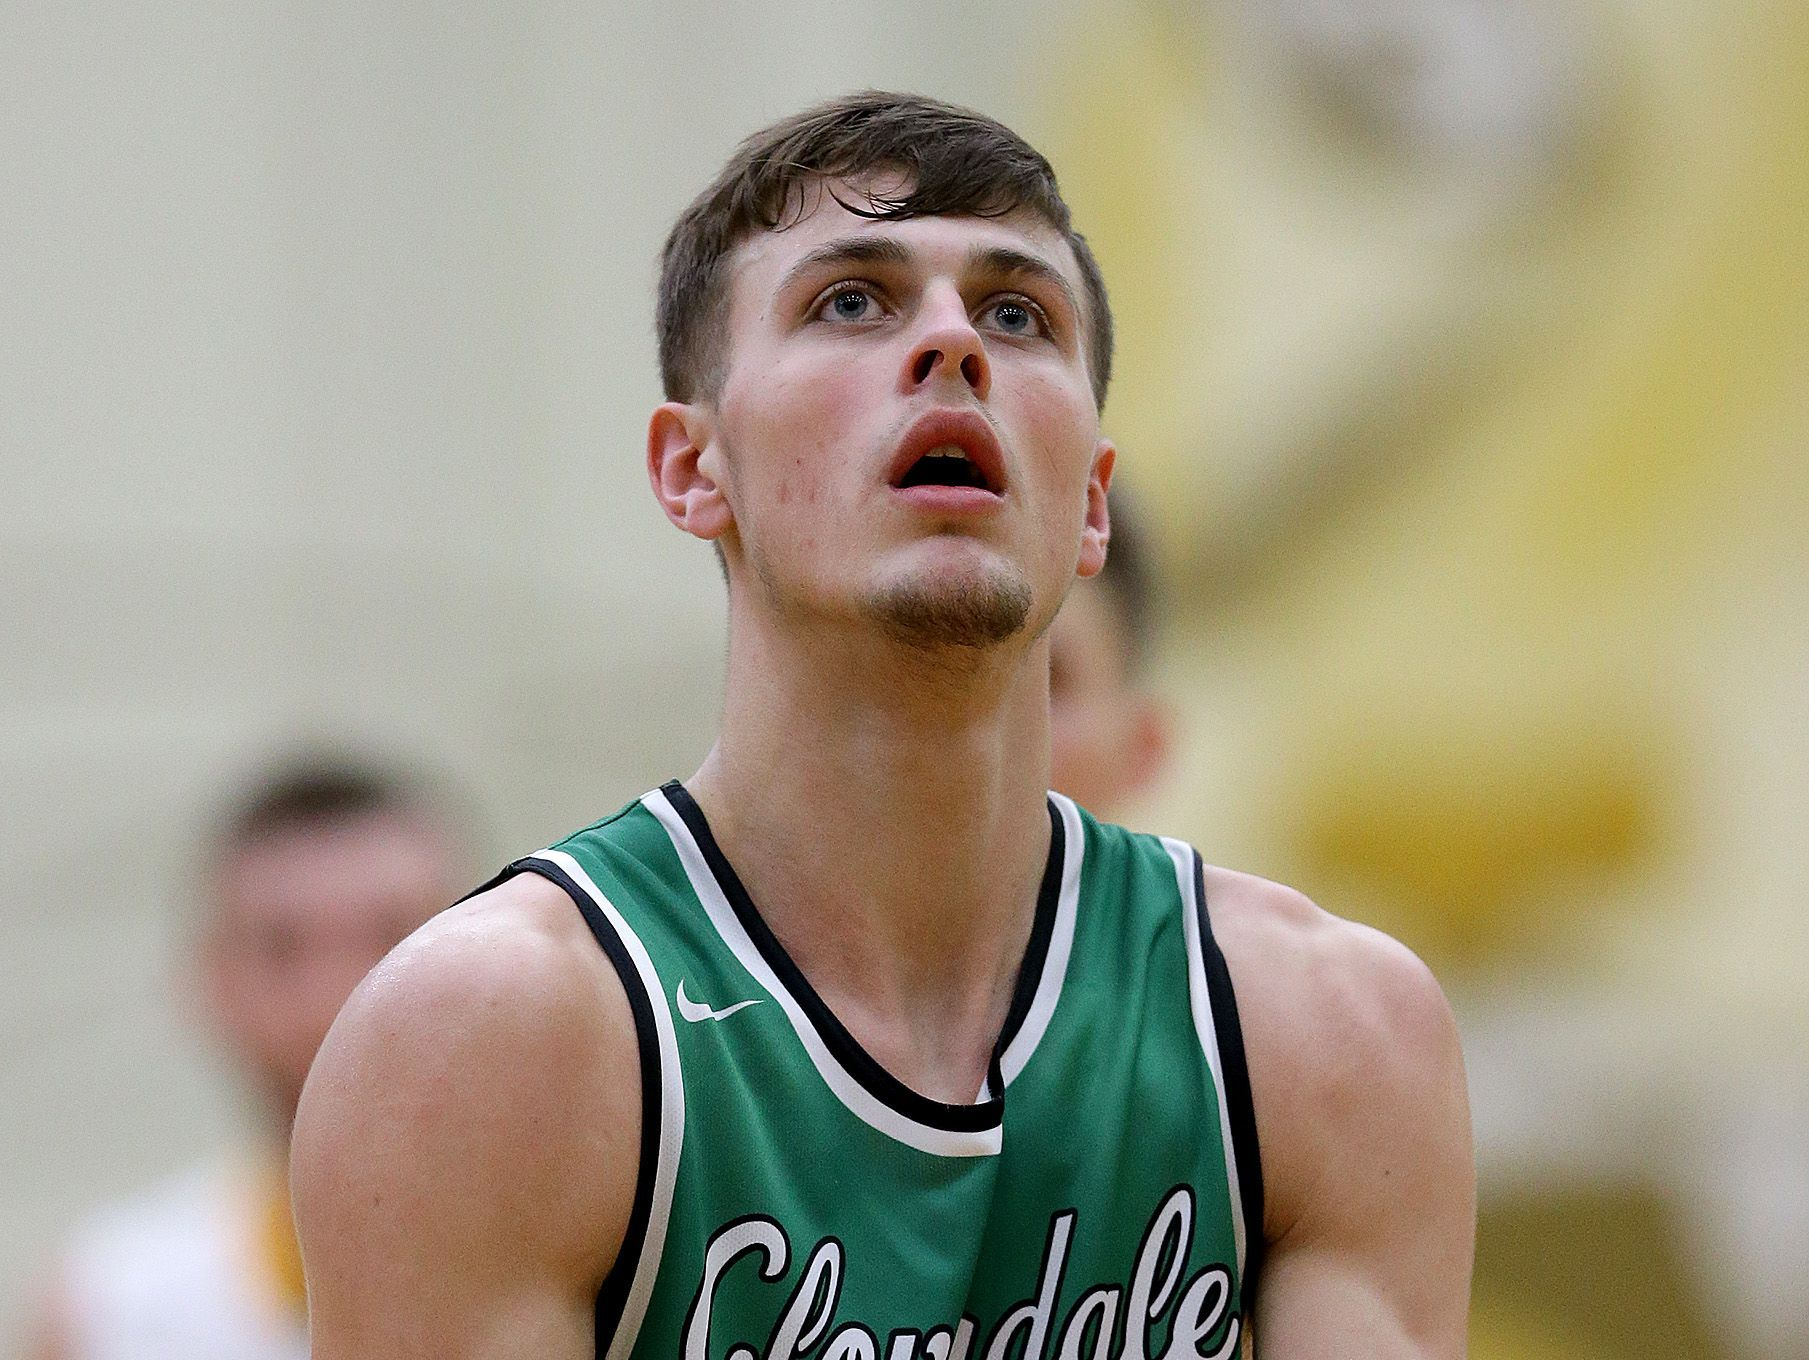 Cloverdale Clovers Cooper Neese (11) shoots a free-throw in the second half of their IHSAA Boys Regional basketball game, Saturday, March 11, 2017, morning at Greenfield-Central High School in Greenfield IN.